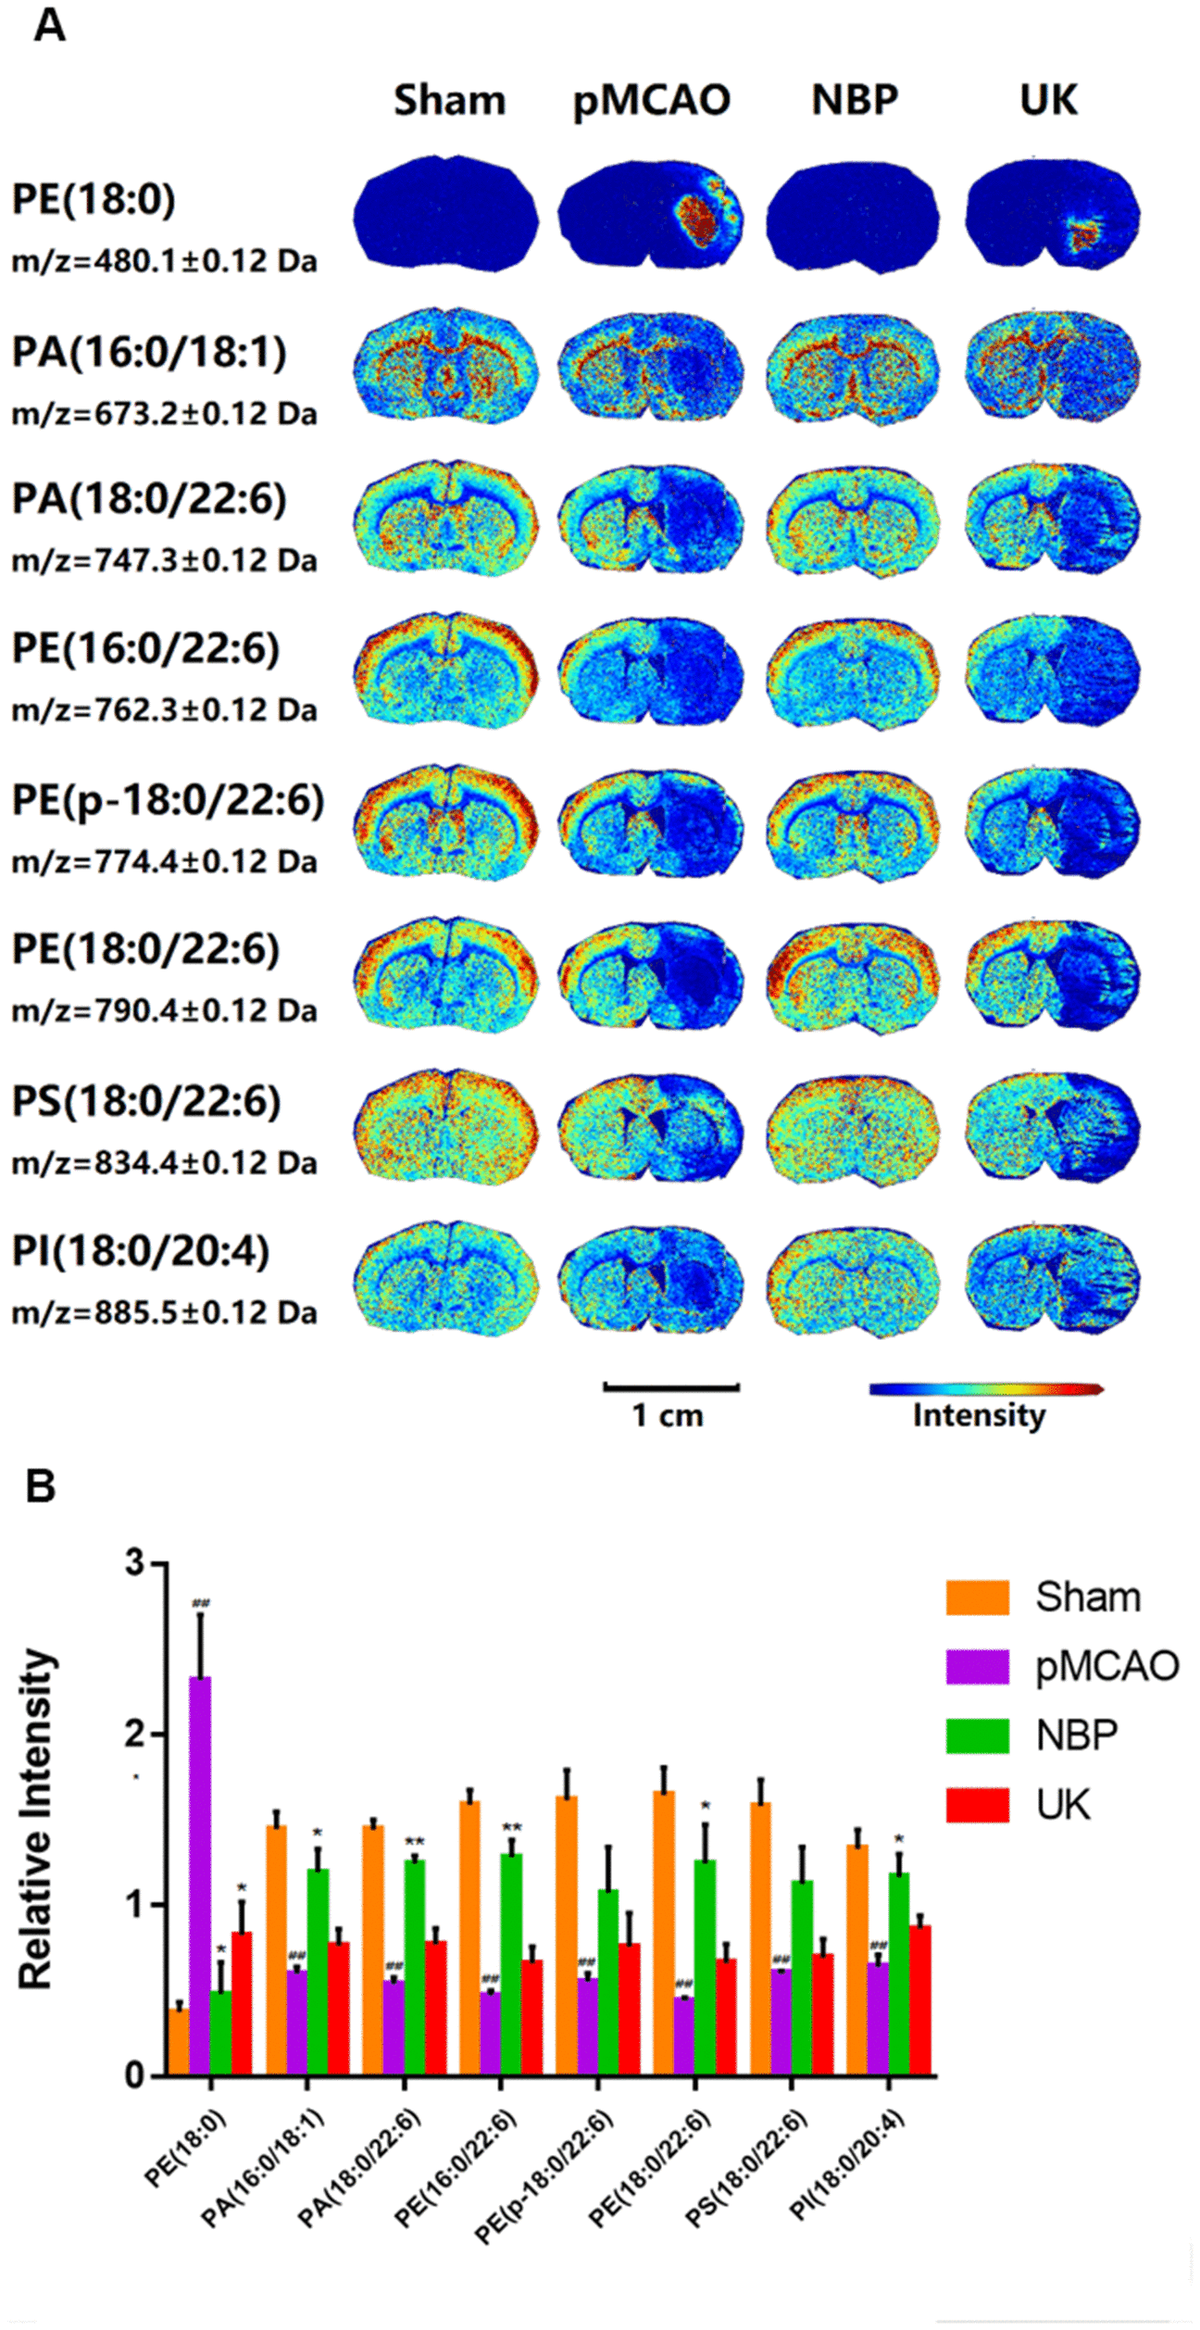 Changes in phospholipid levels in the brains of rats with pMCAO. (A) In situ MALDI-TOF MSI of phosphatidylethanolamine (PE) (18:0), phosphatidic acid (PA) (16:0/18:1), PA (18:0/22:6), PE (16:0/22:6), PE (p-18:0/22:6), PE (18:0/22:6), phosphatidylserine (PS) (18:0/22:6) and phosphatidylinositol (PI) (18:0/20:4). The spatial resolution was set to 100 μm. Scale bar = 1 cm. (B) Statistical analysis of the relative intensities of the phospholipids mentioned above. Values were normalized to those in the left brain where there was no ischemia. The data are presented as the mean ± SD, n = 3, and were assessed using one-way ANOVA. ## P P P